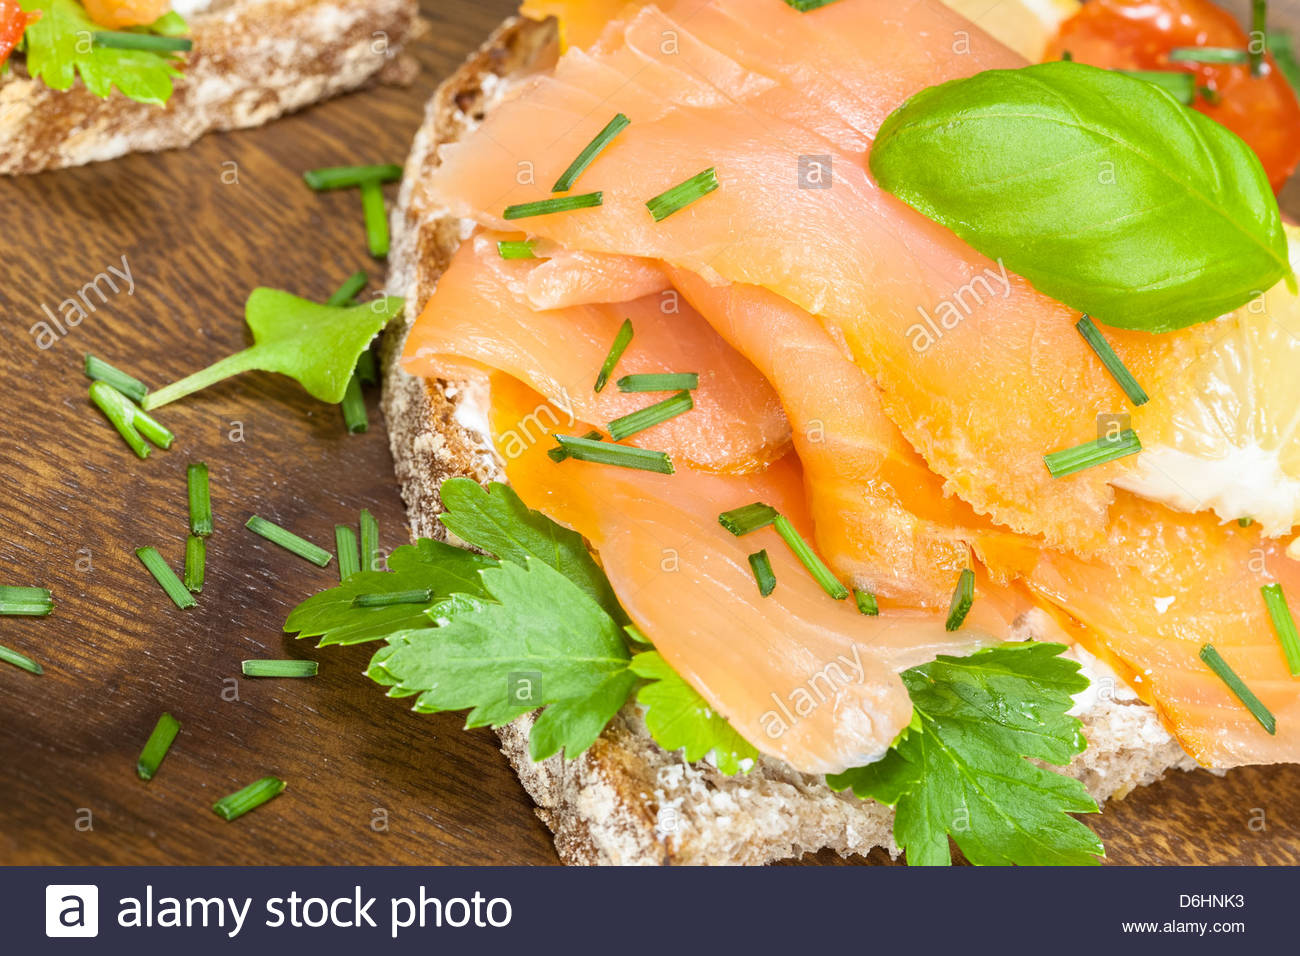 Smoked salmon and cream cheese canape stock photo royalty for Smoked salmon cream cheese canape